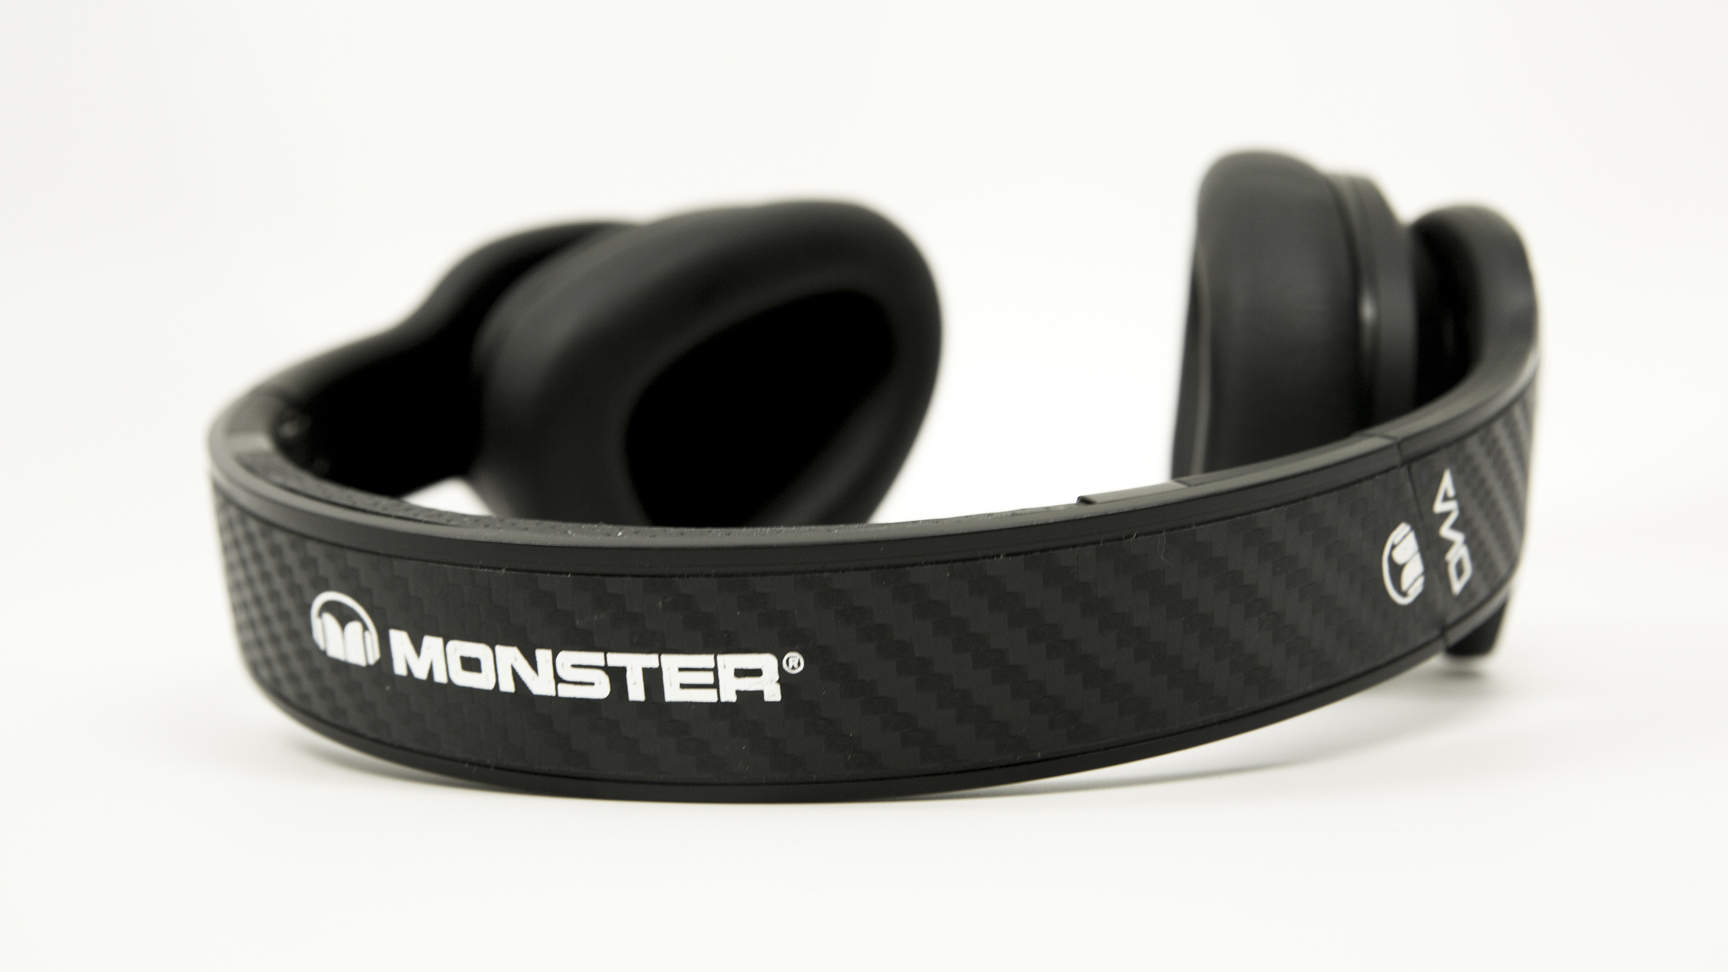 Monster DNA Pro 2 over-the-ear Headphones